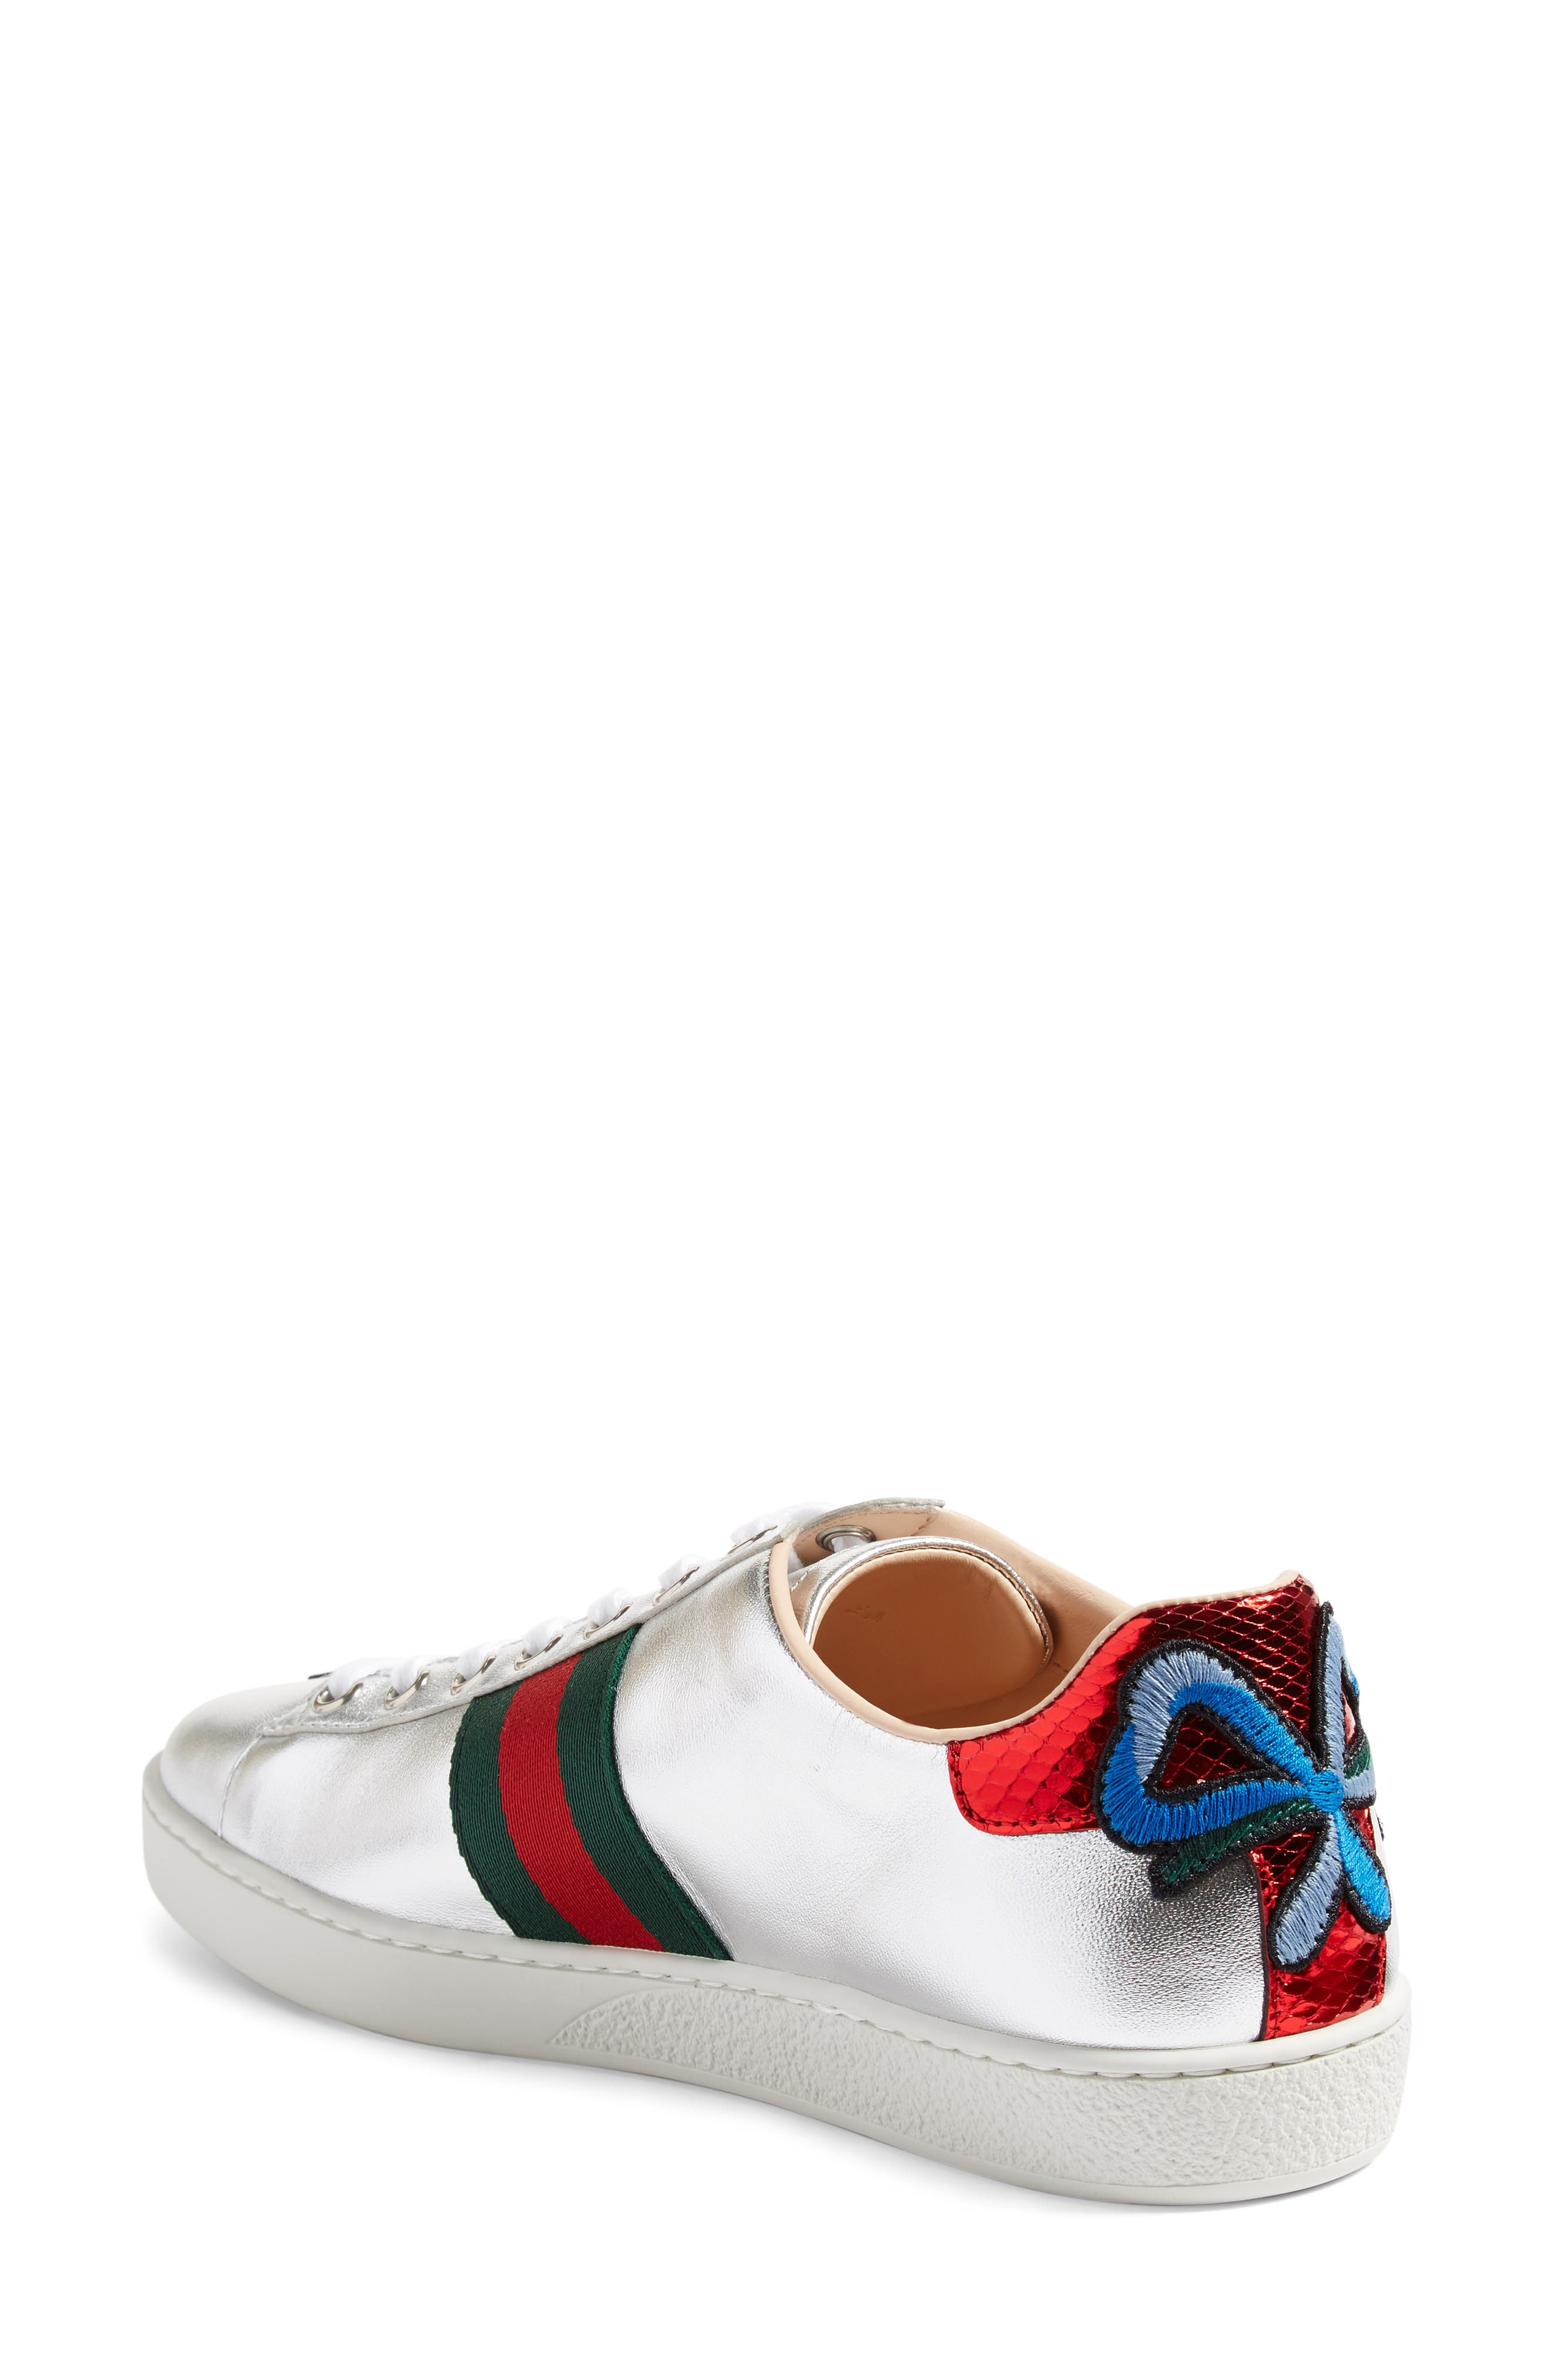 'New Ace' Low Top Sneaker,                             Alternate thumbnail 17, color,